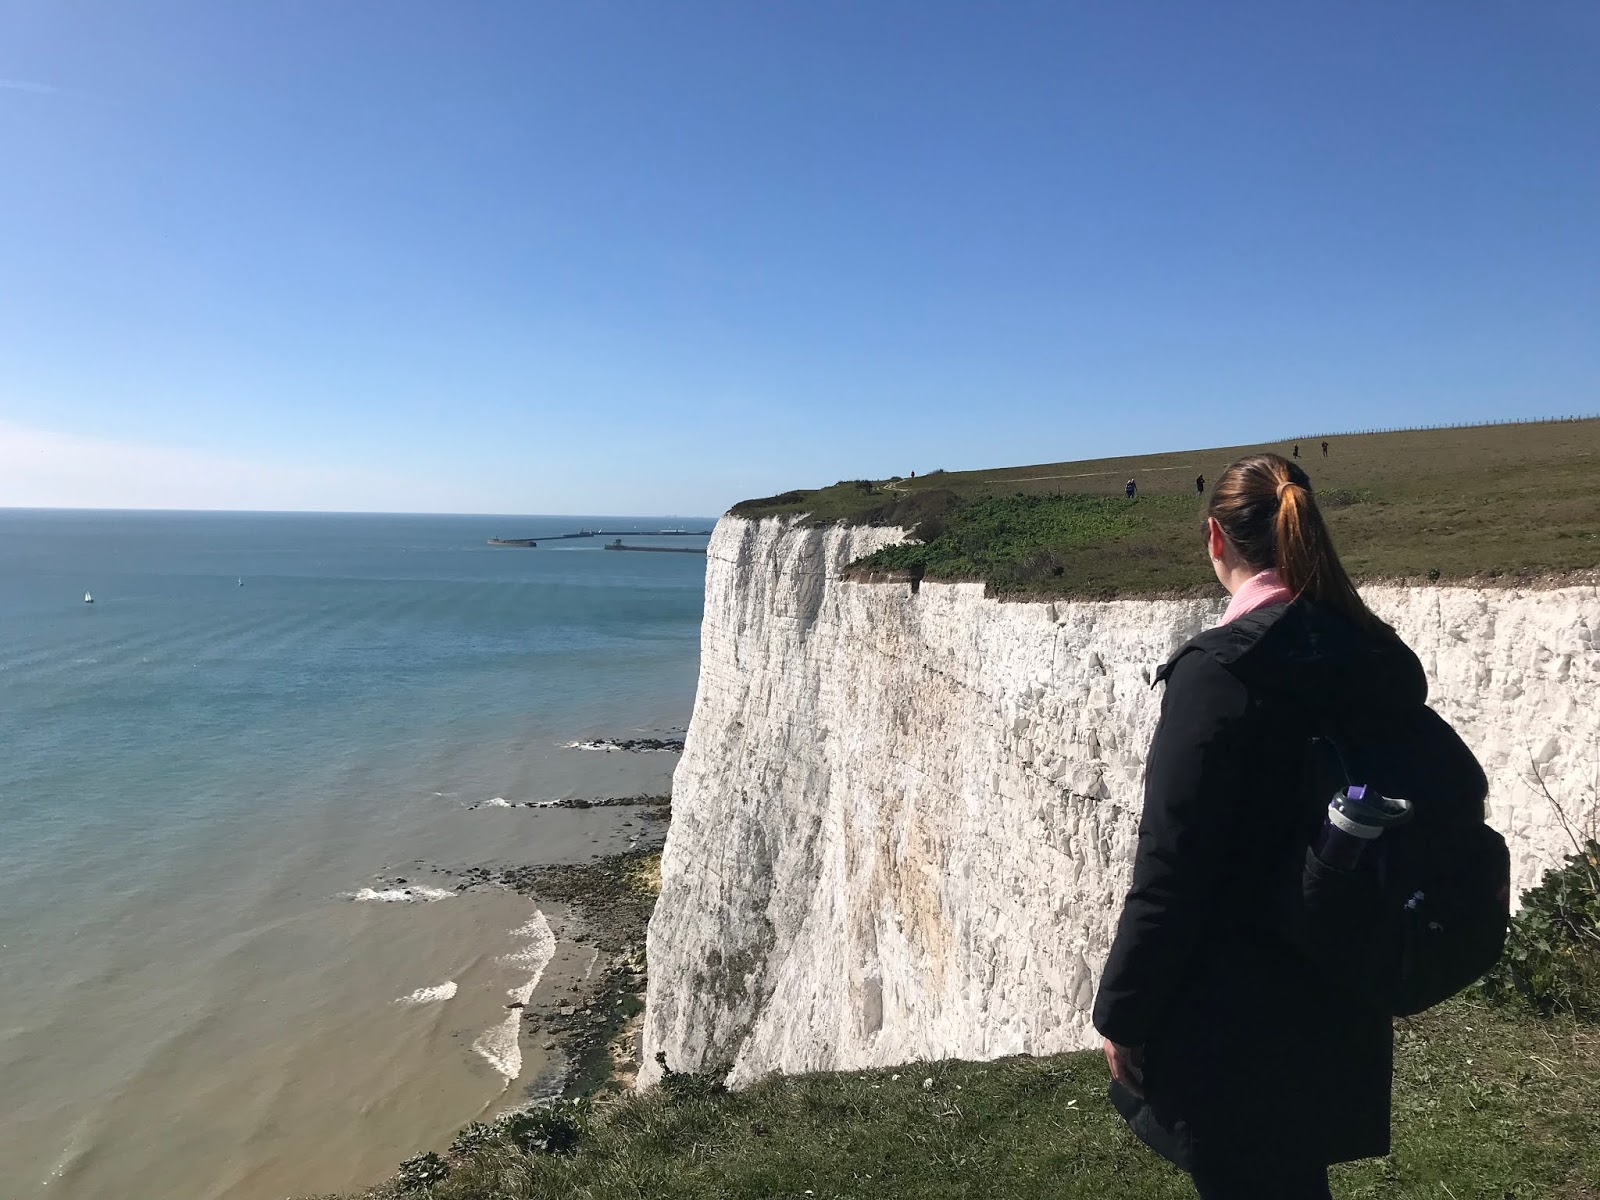 White Cliffs of Dover - England